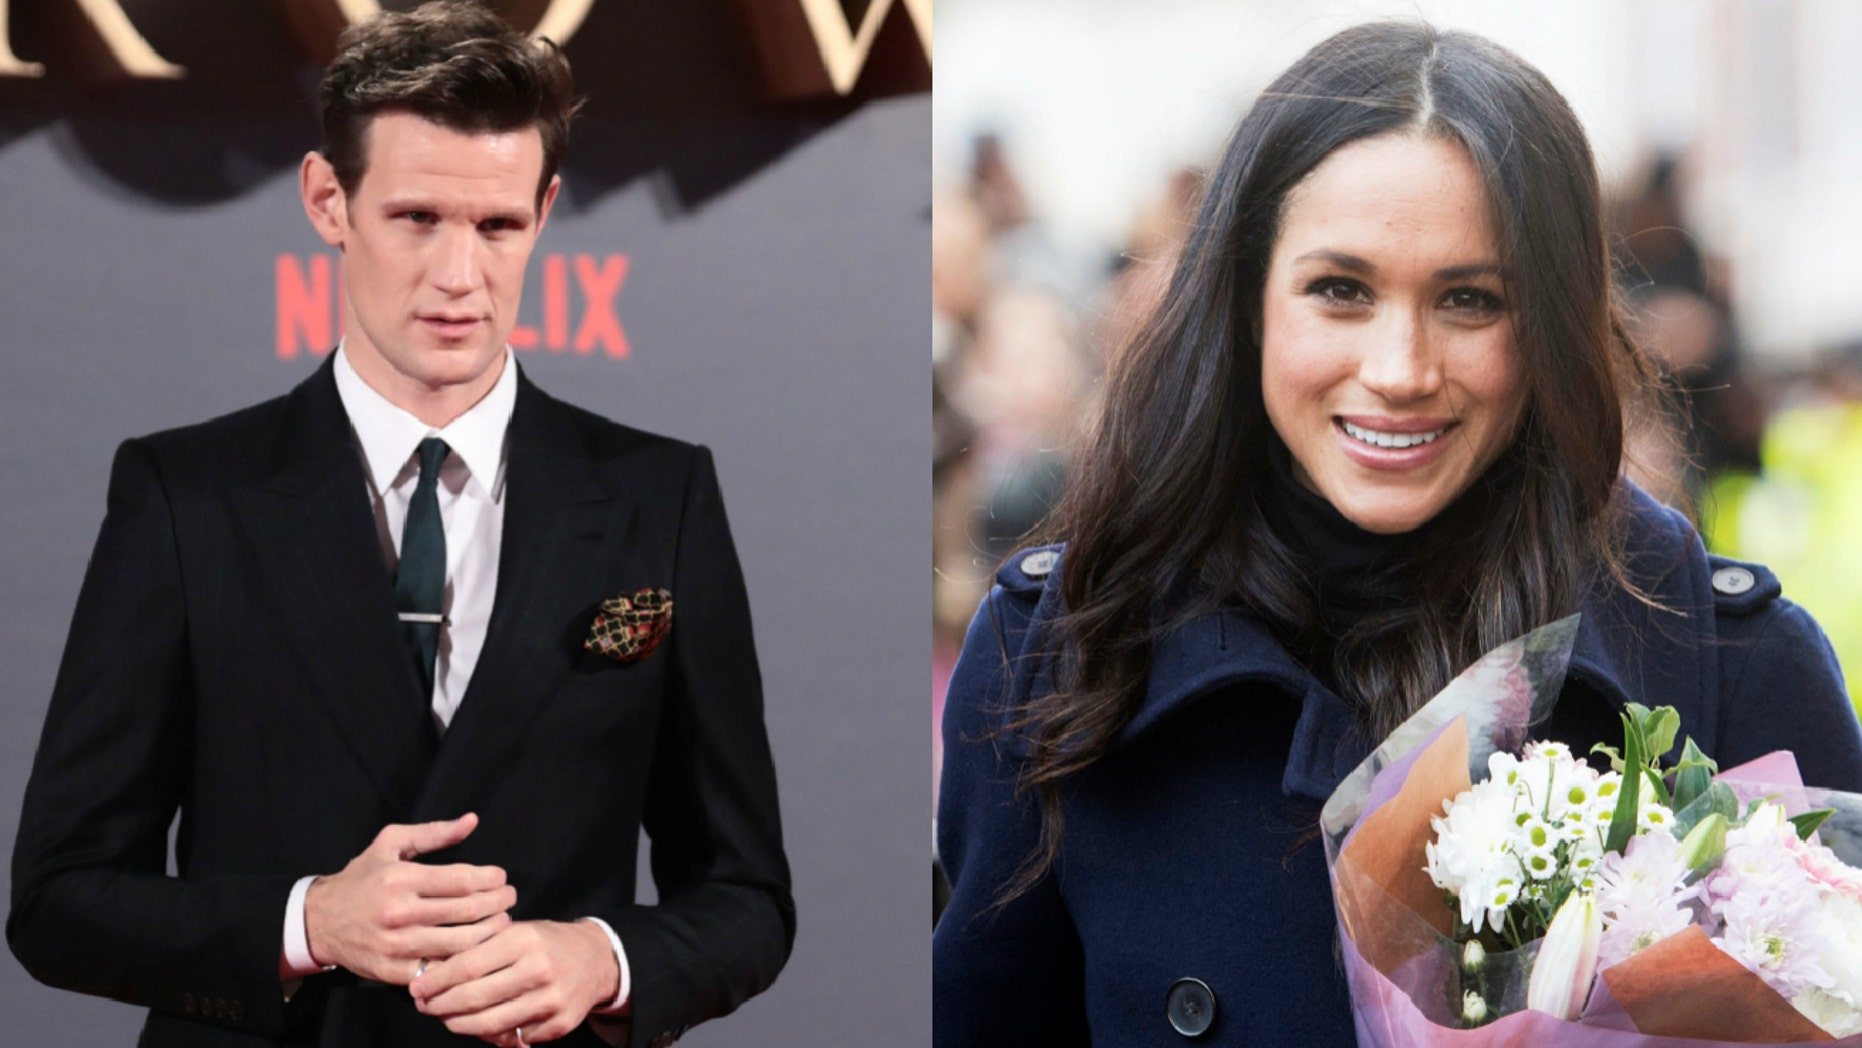 The crowns matt smith i feel sorry for meghan markle fox news after starring in the the crown matt smith understands royal life and now izmirmasajfo